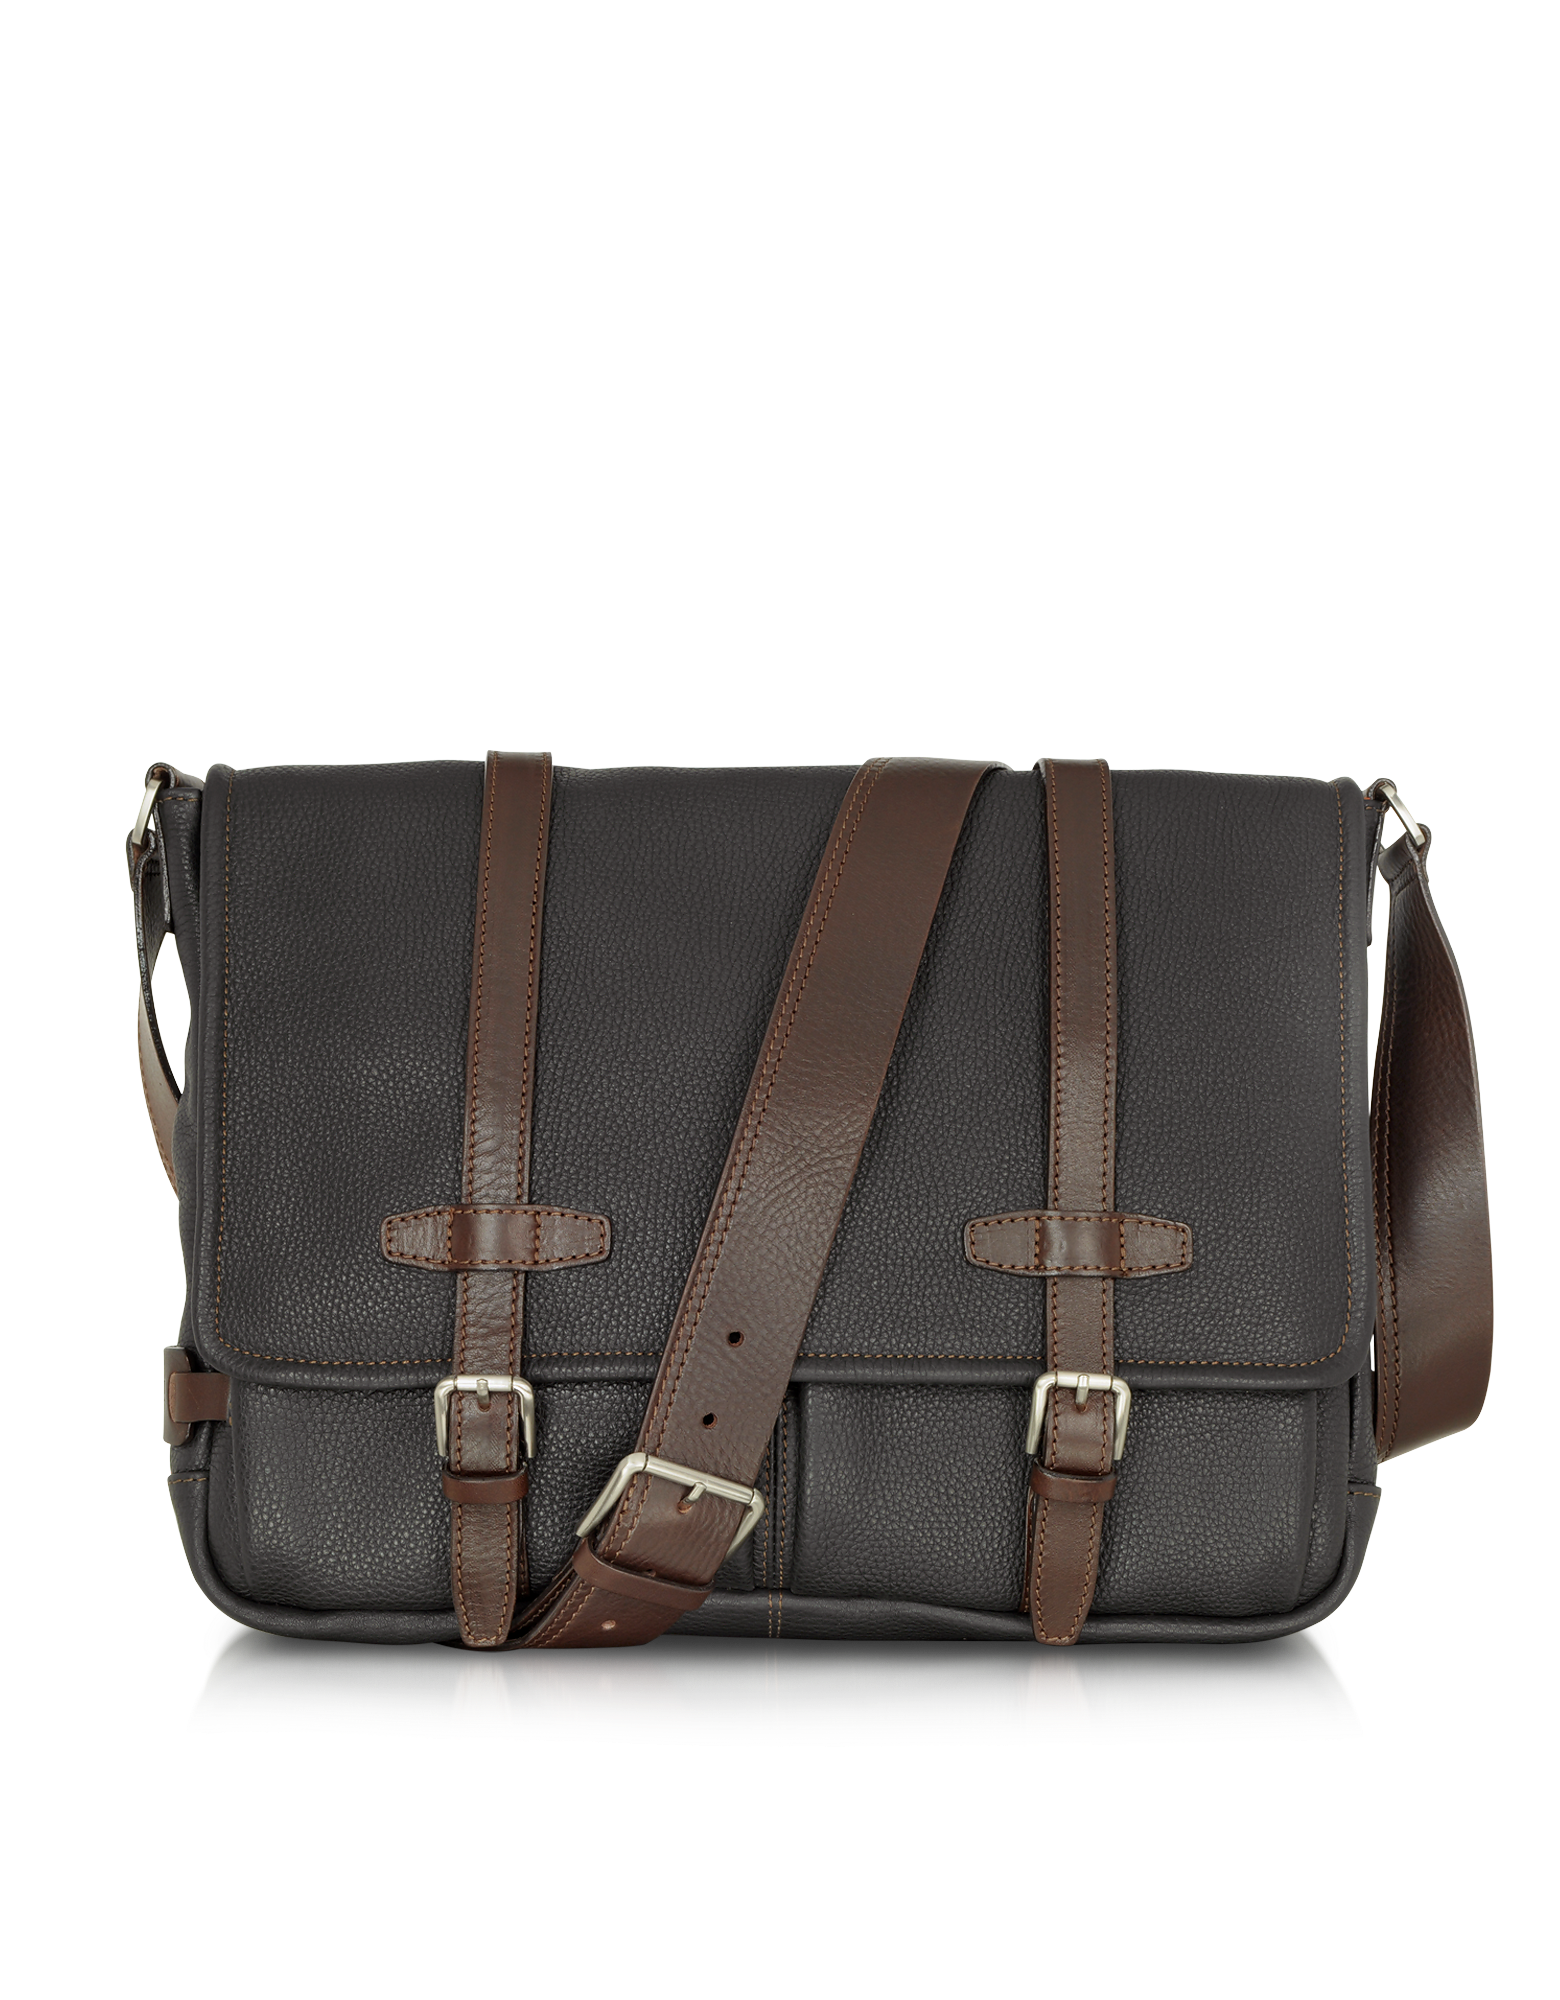 Image of Black and Brown Leather Messenger